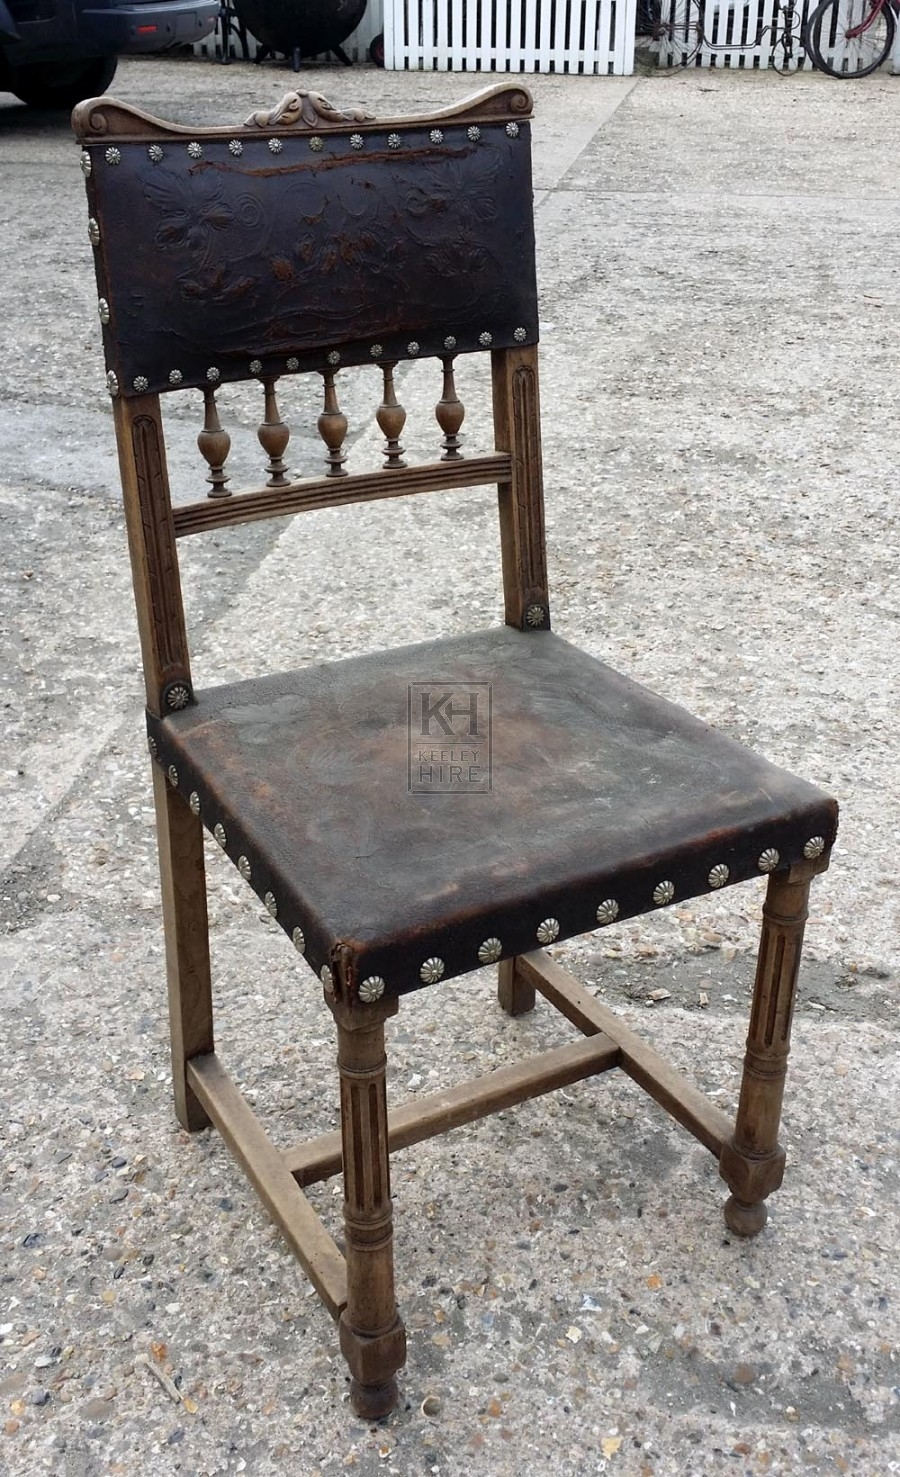 Leather studded chair with turned legs